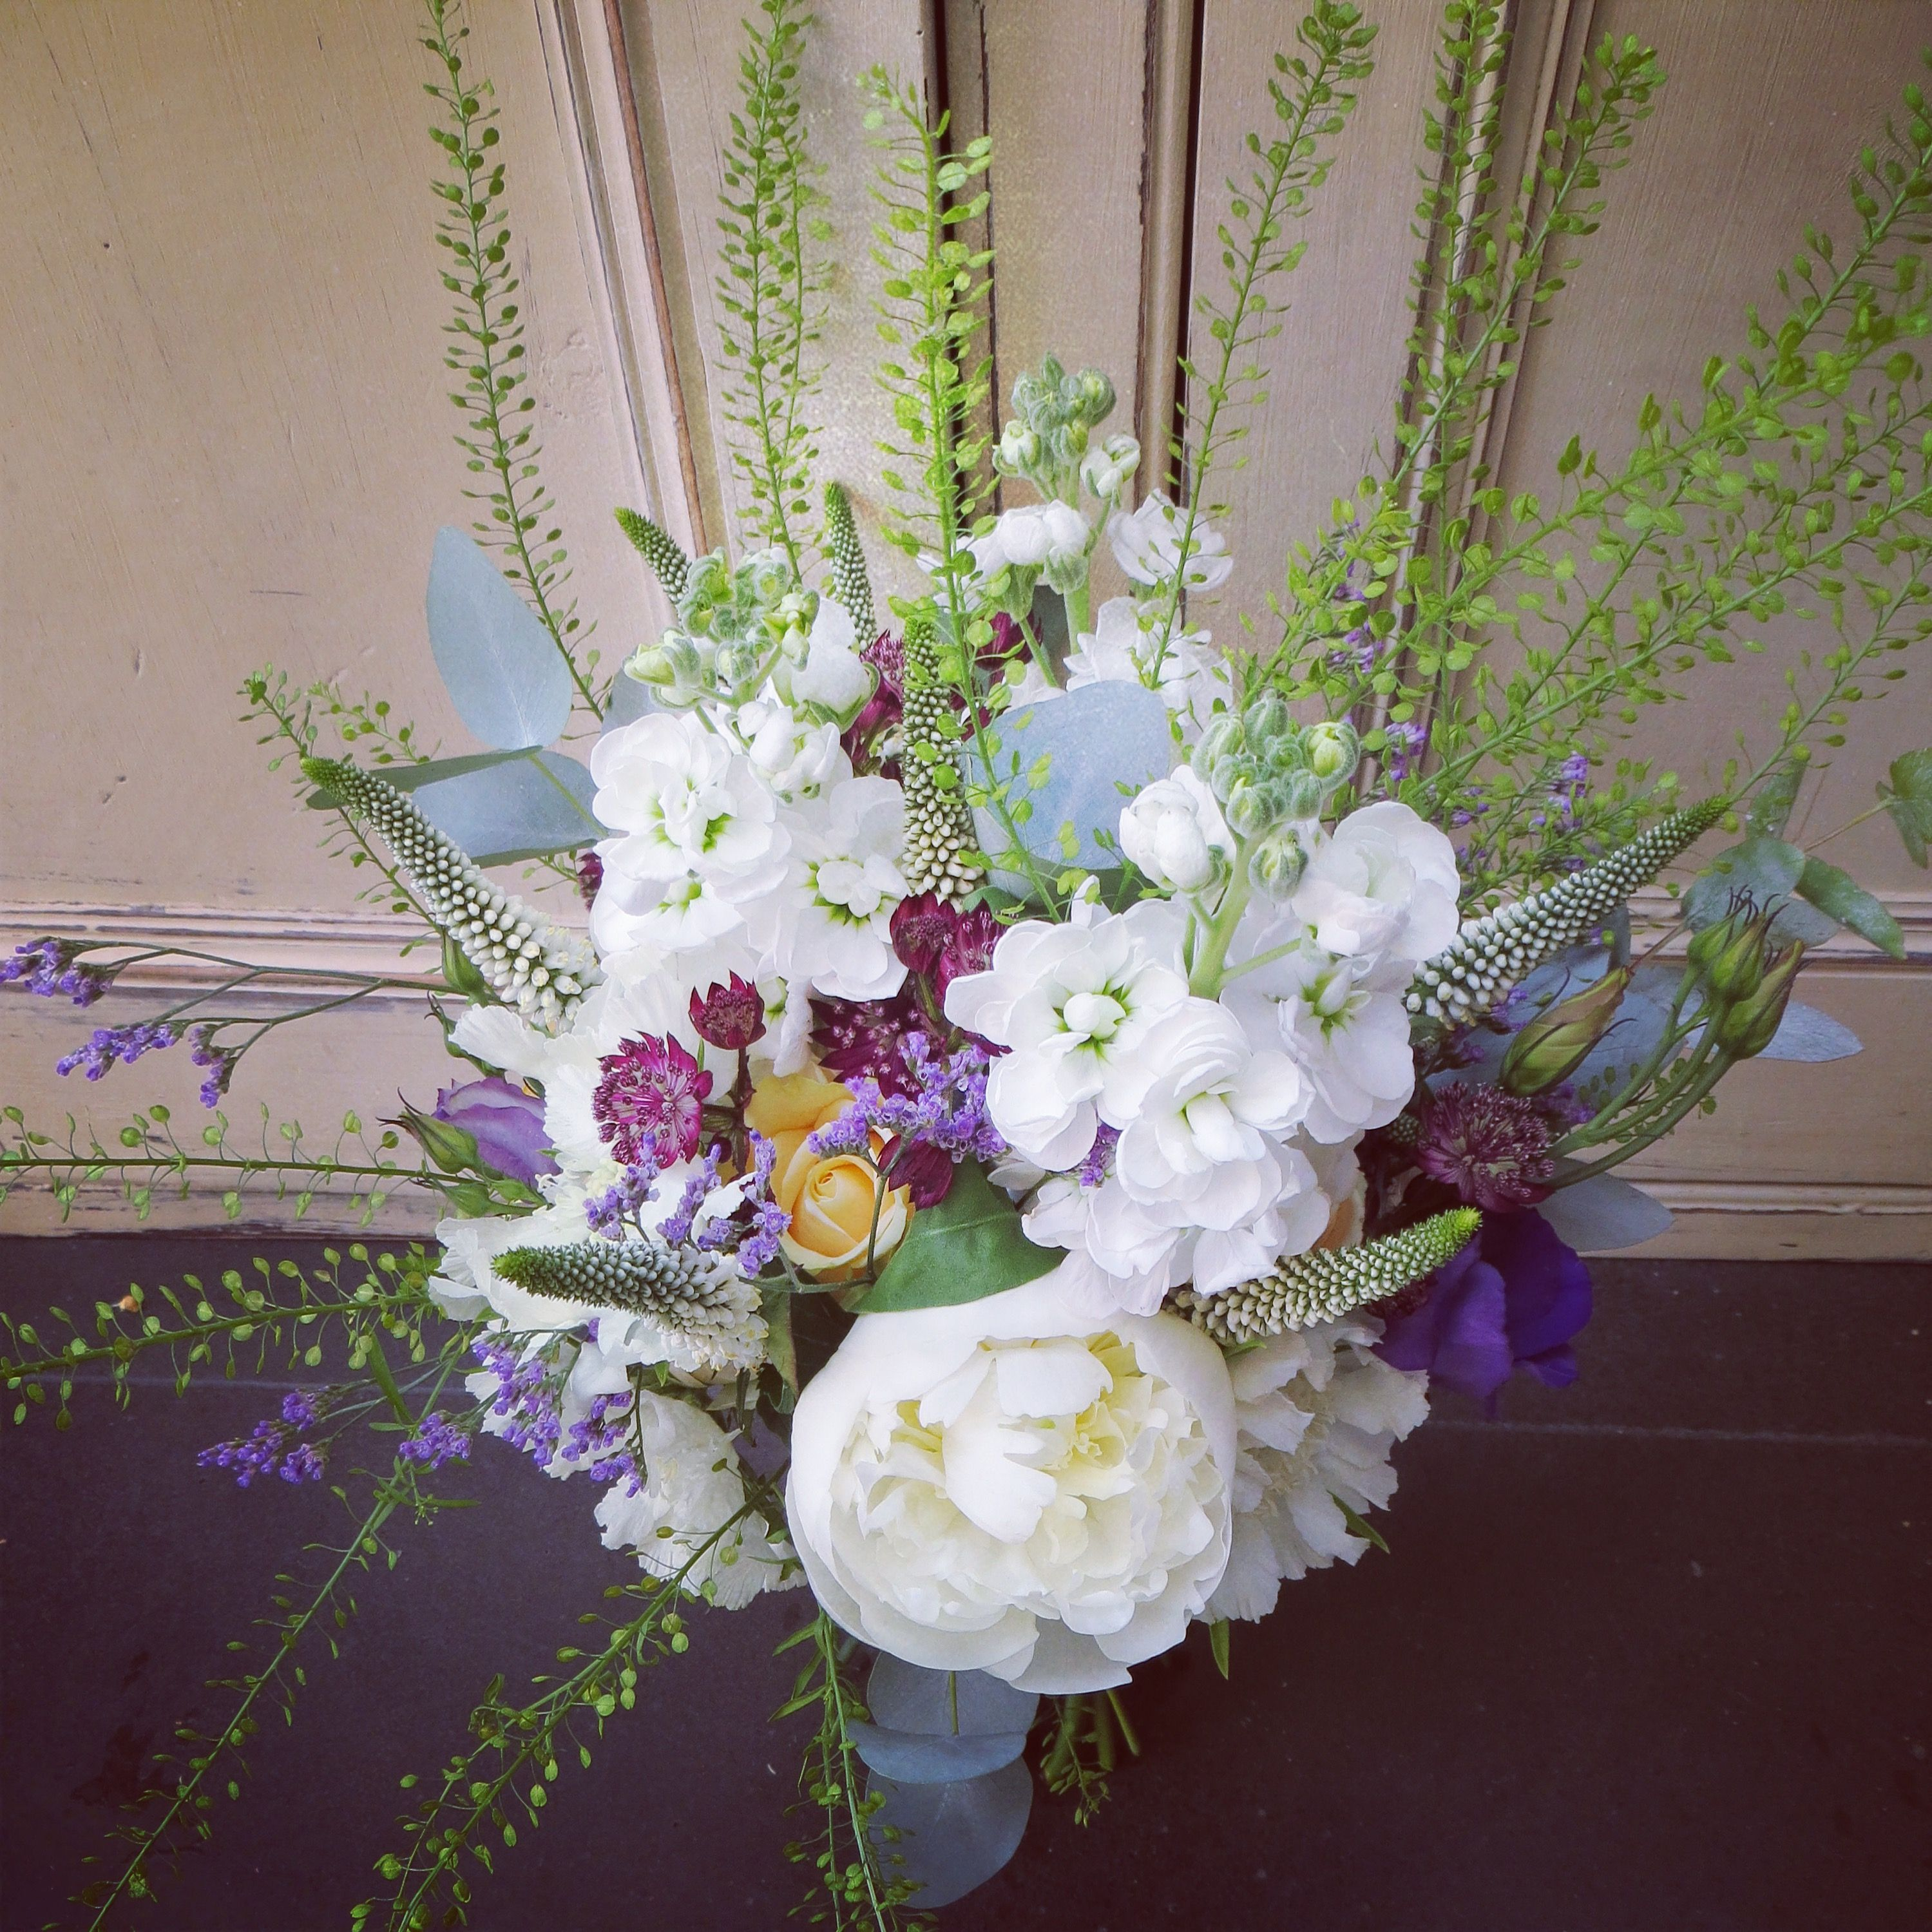 Peonies, thlaspi, astrantia, stocks and roses. #rusticbouquet #wildbouquet